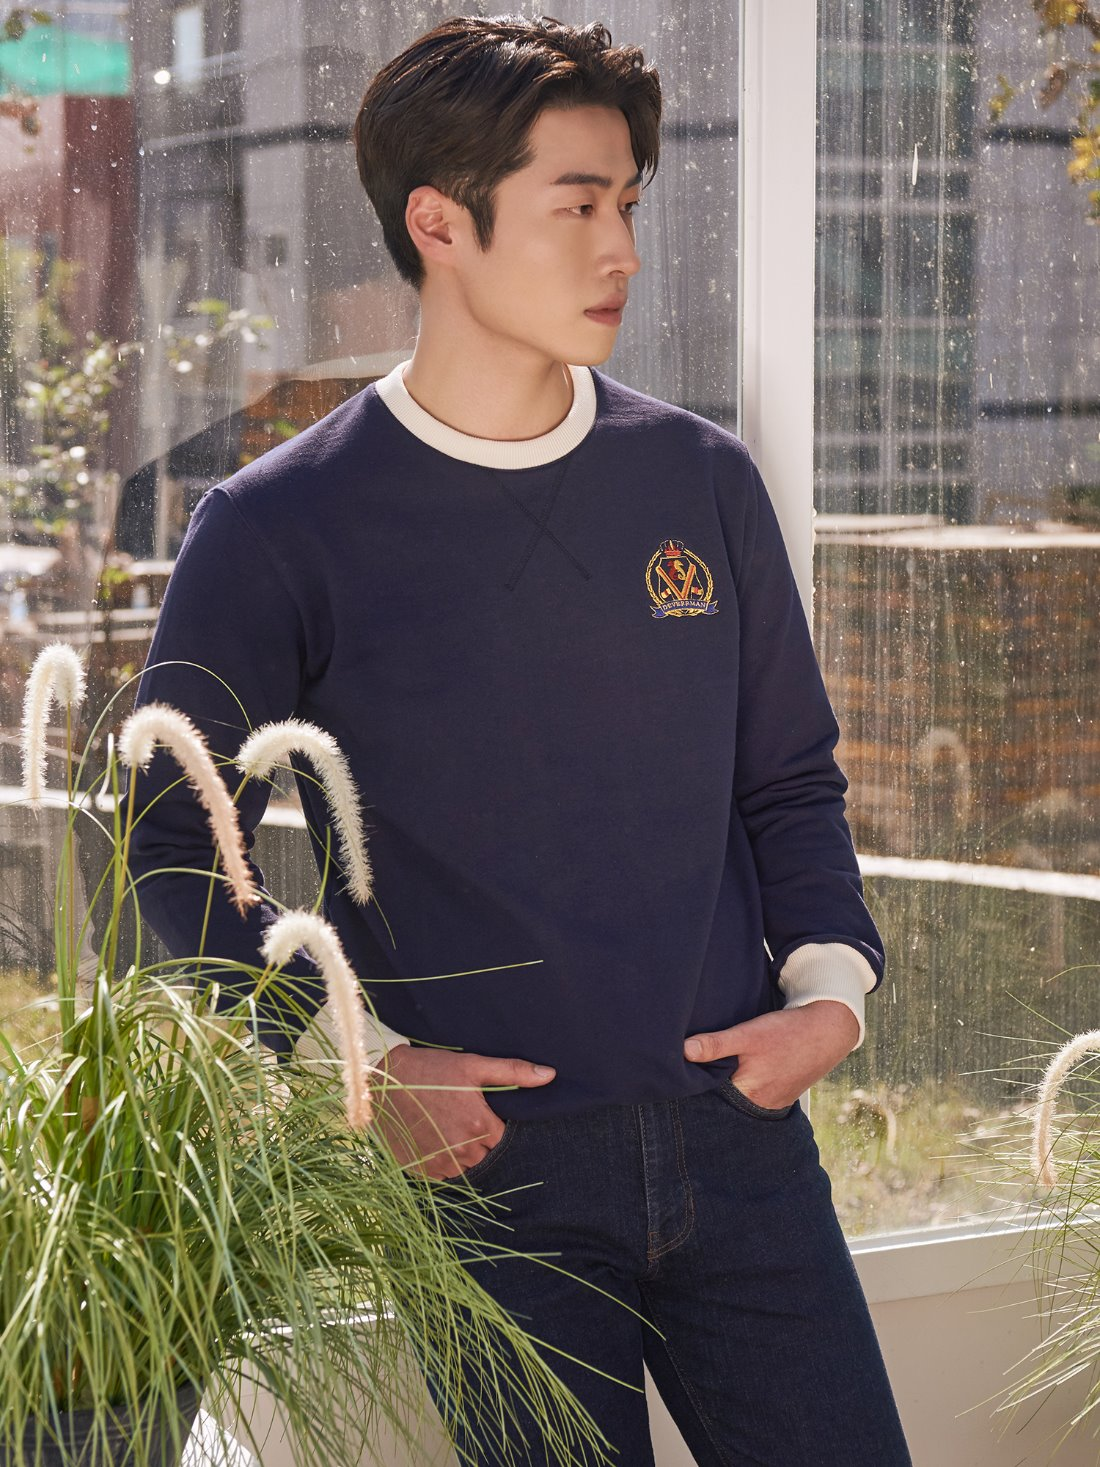 Deverrman emblem sweat shirt (navy)